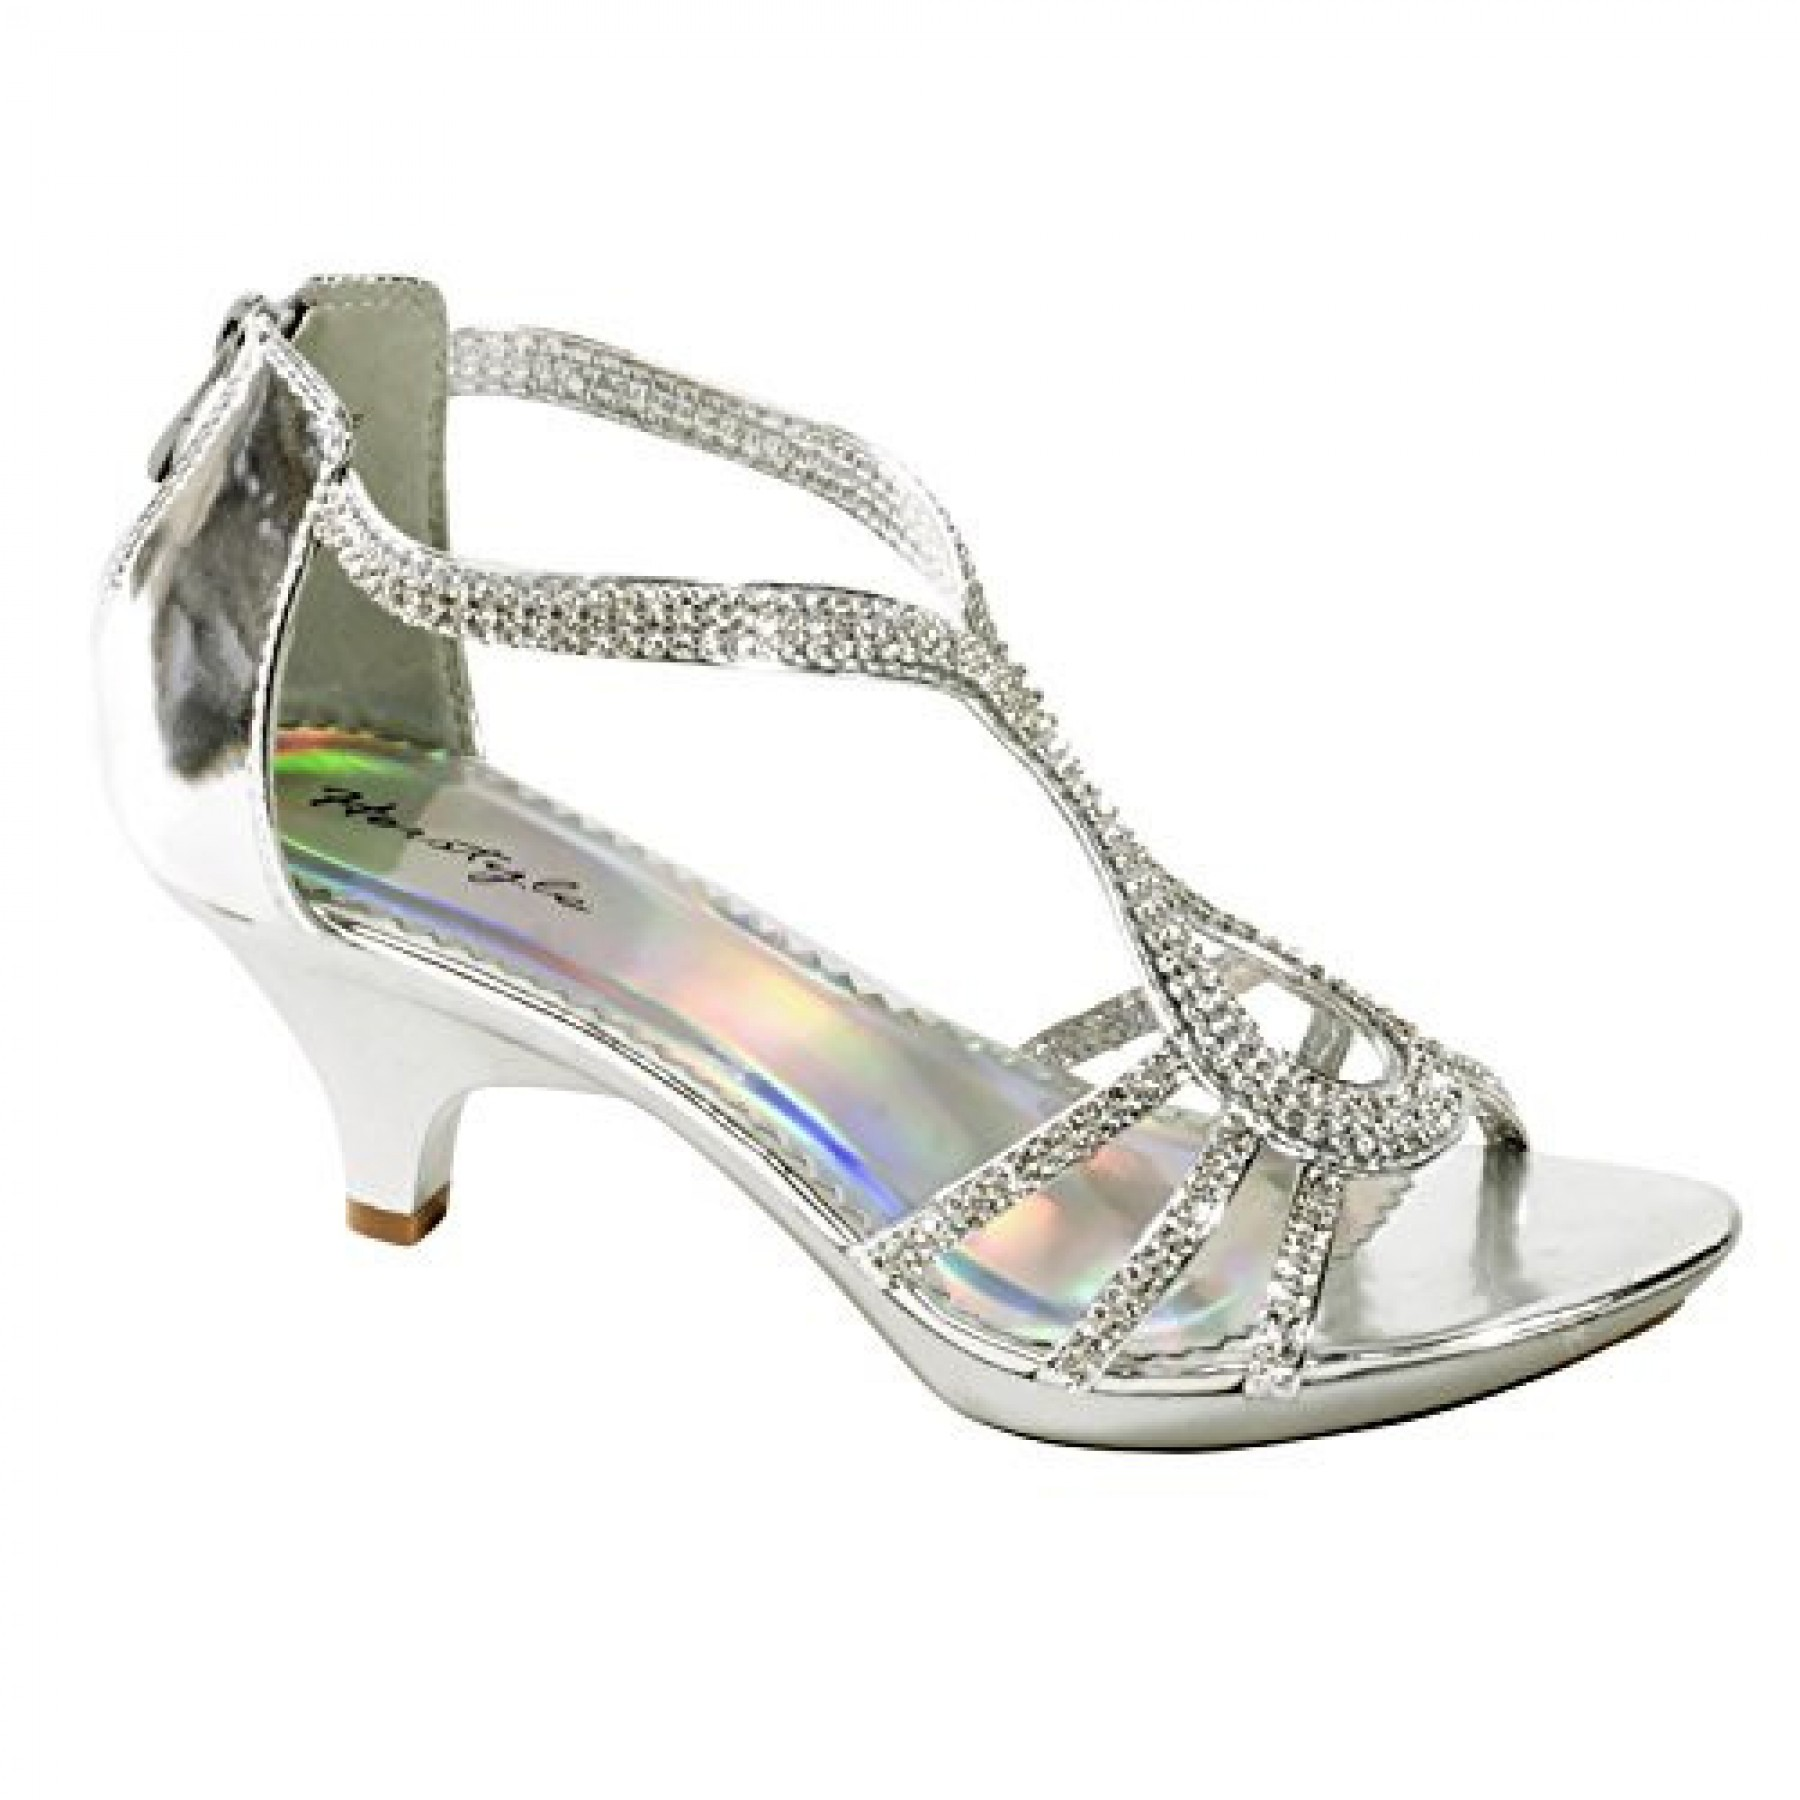 Women's Silver Manmade Maddyra Glowing Low-Heeled Sandal with Rhinestone Straps